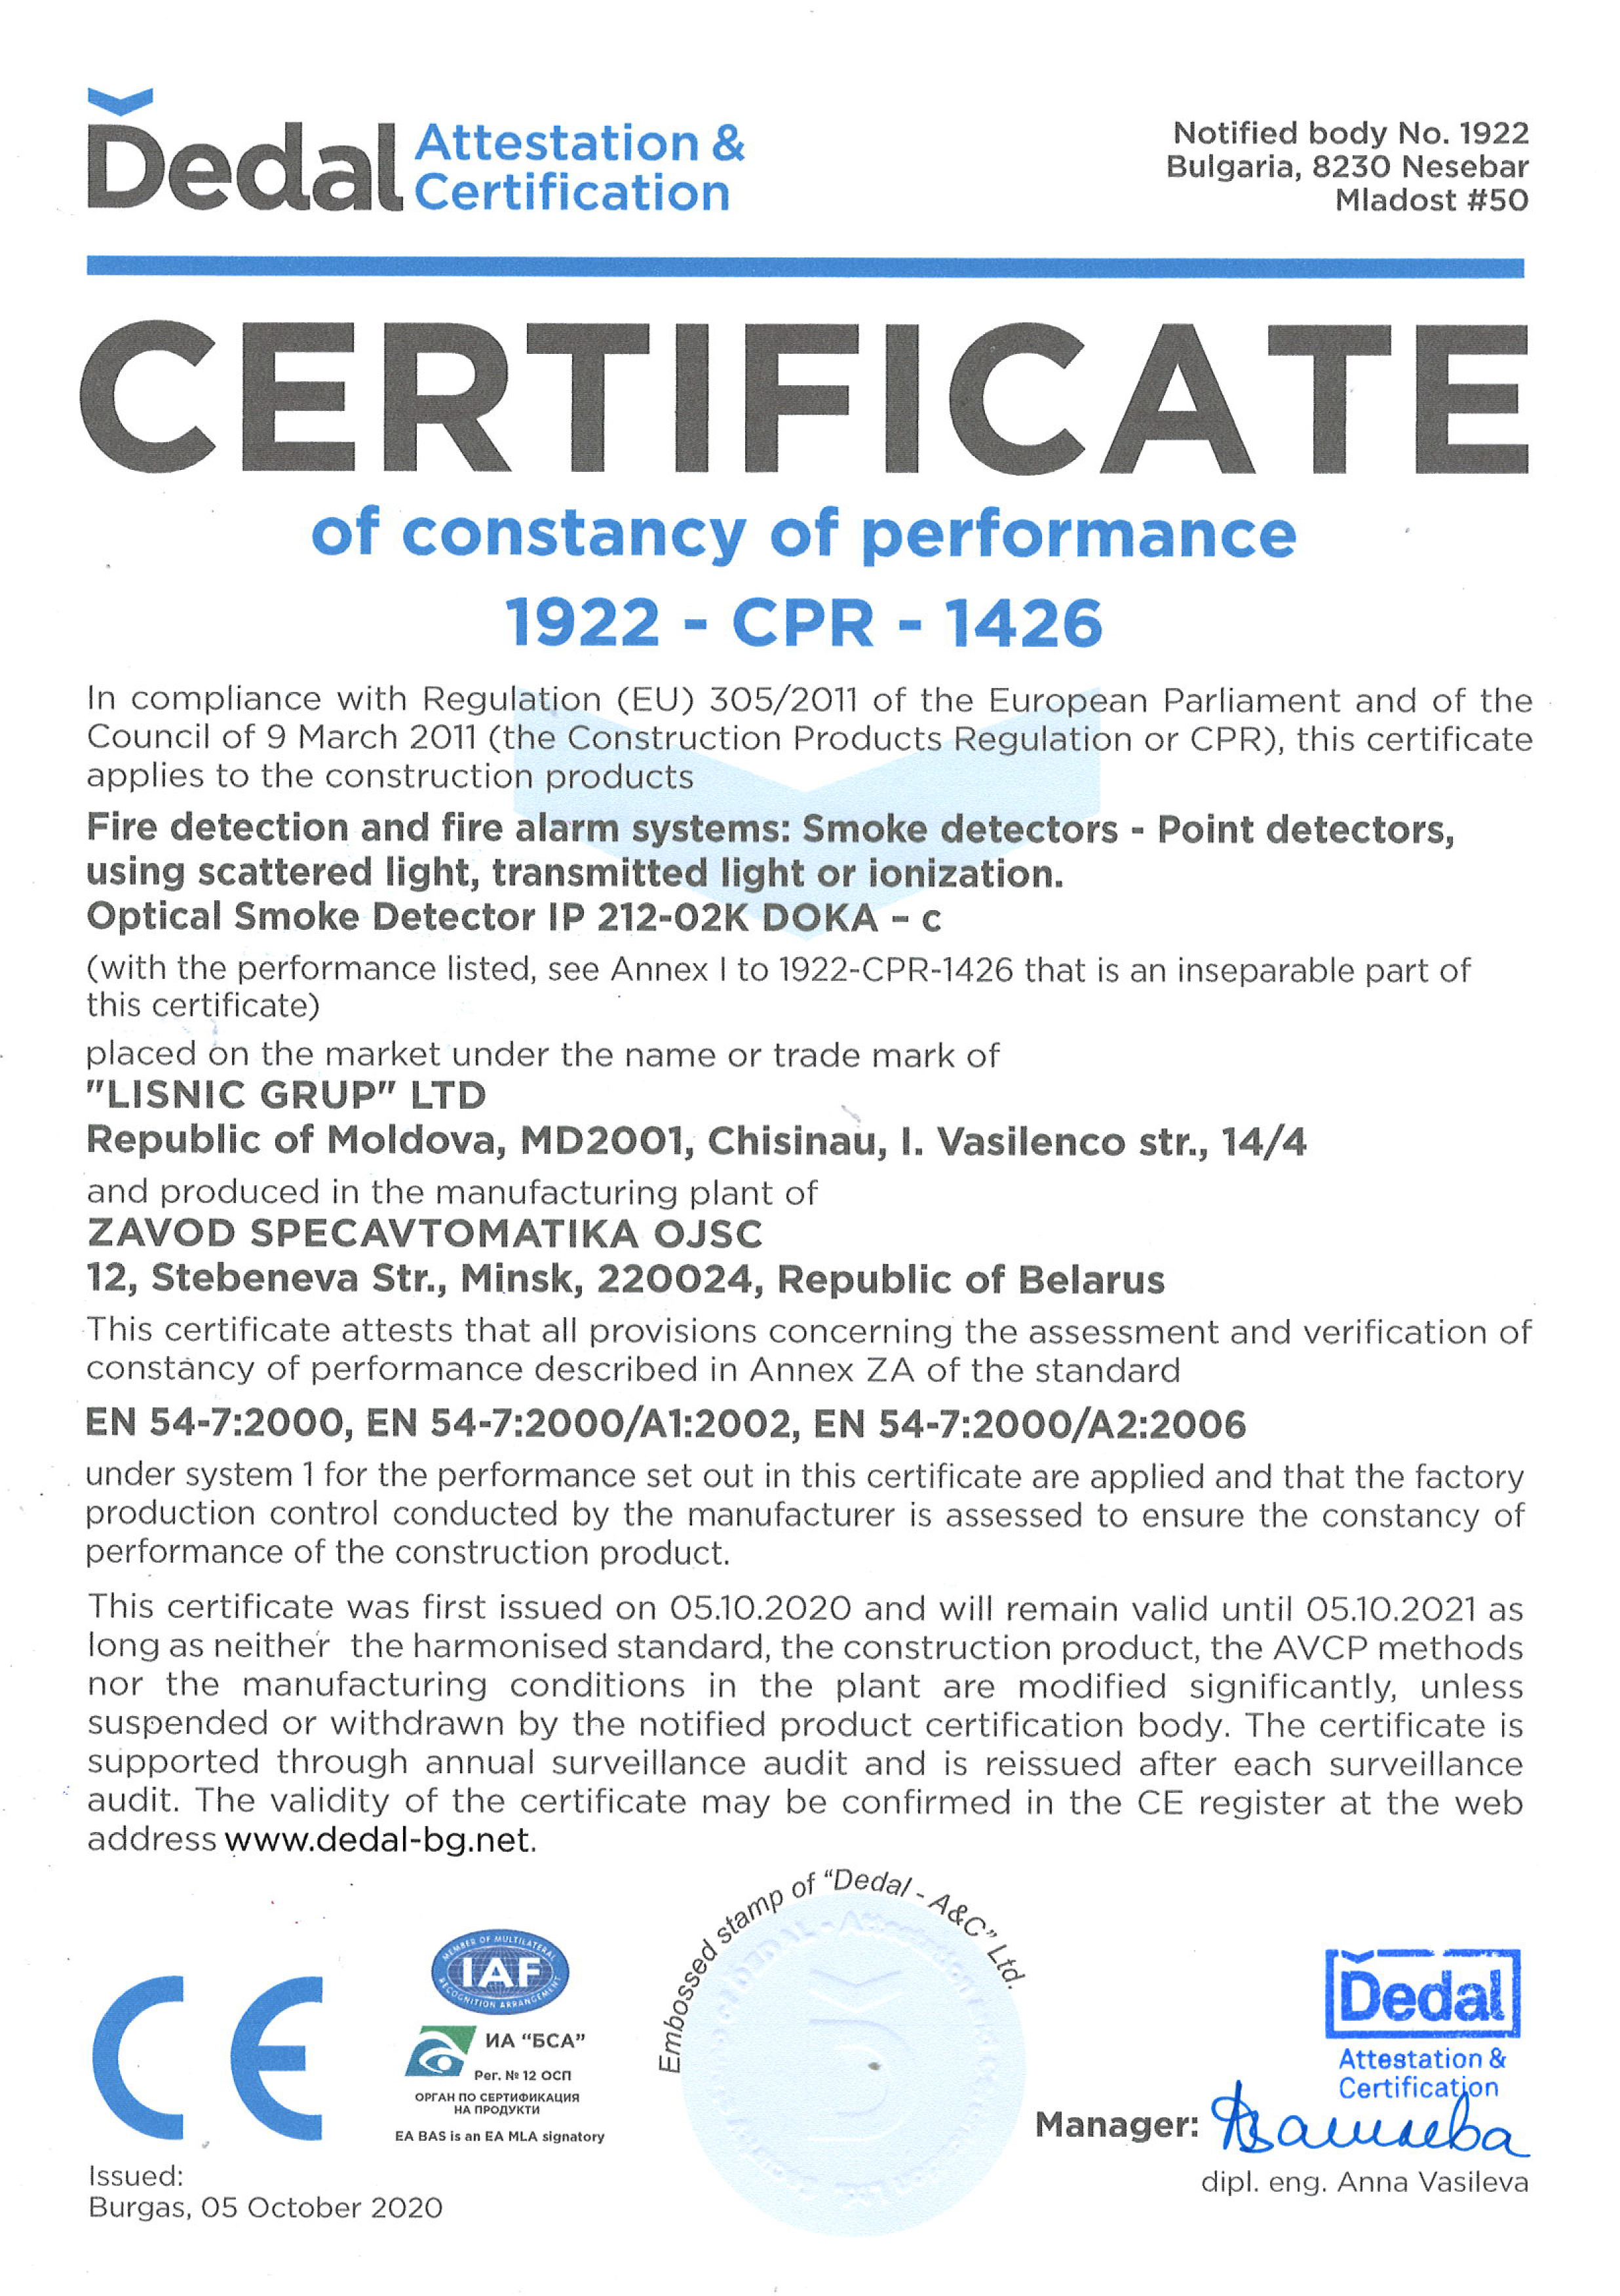 certificate of constancy of performance 1922 - cpr - 1426